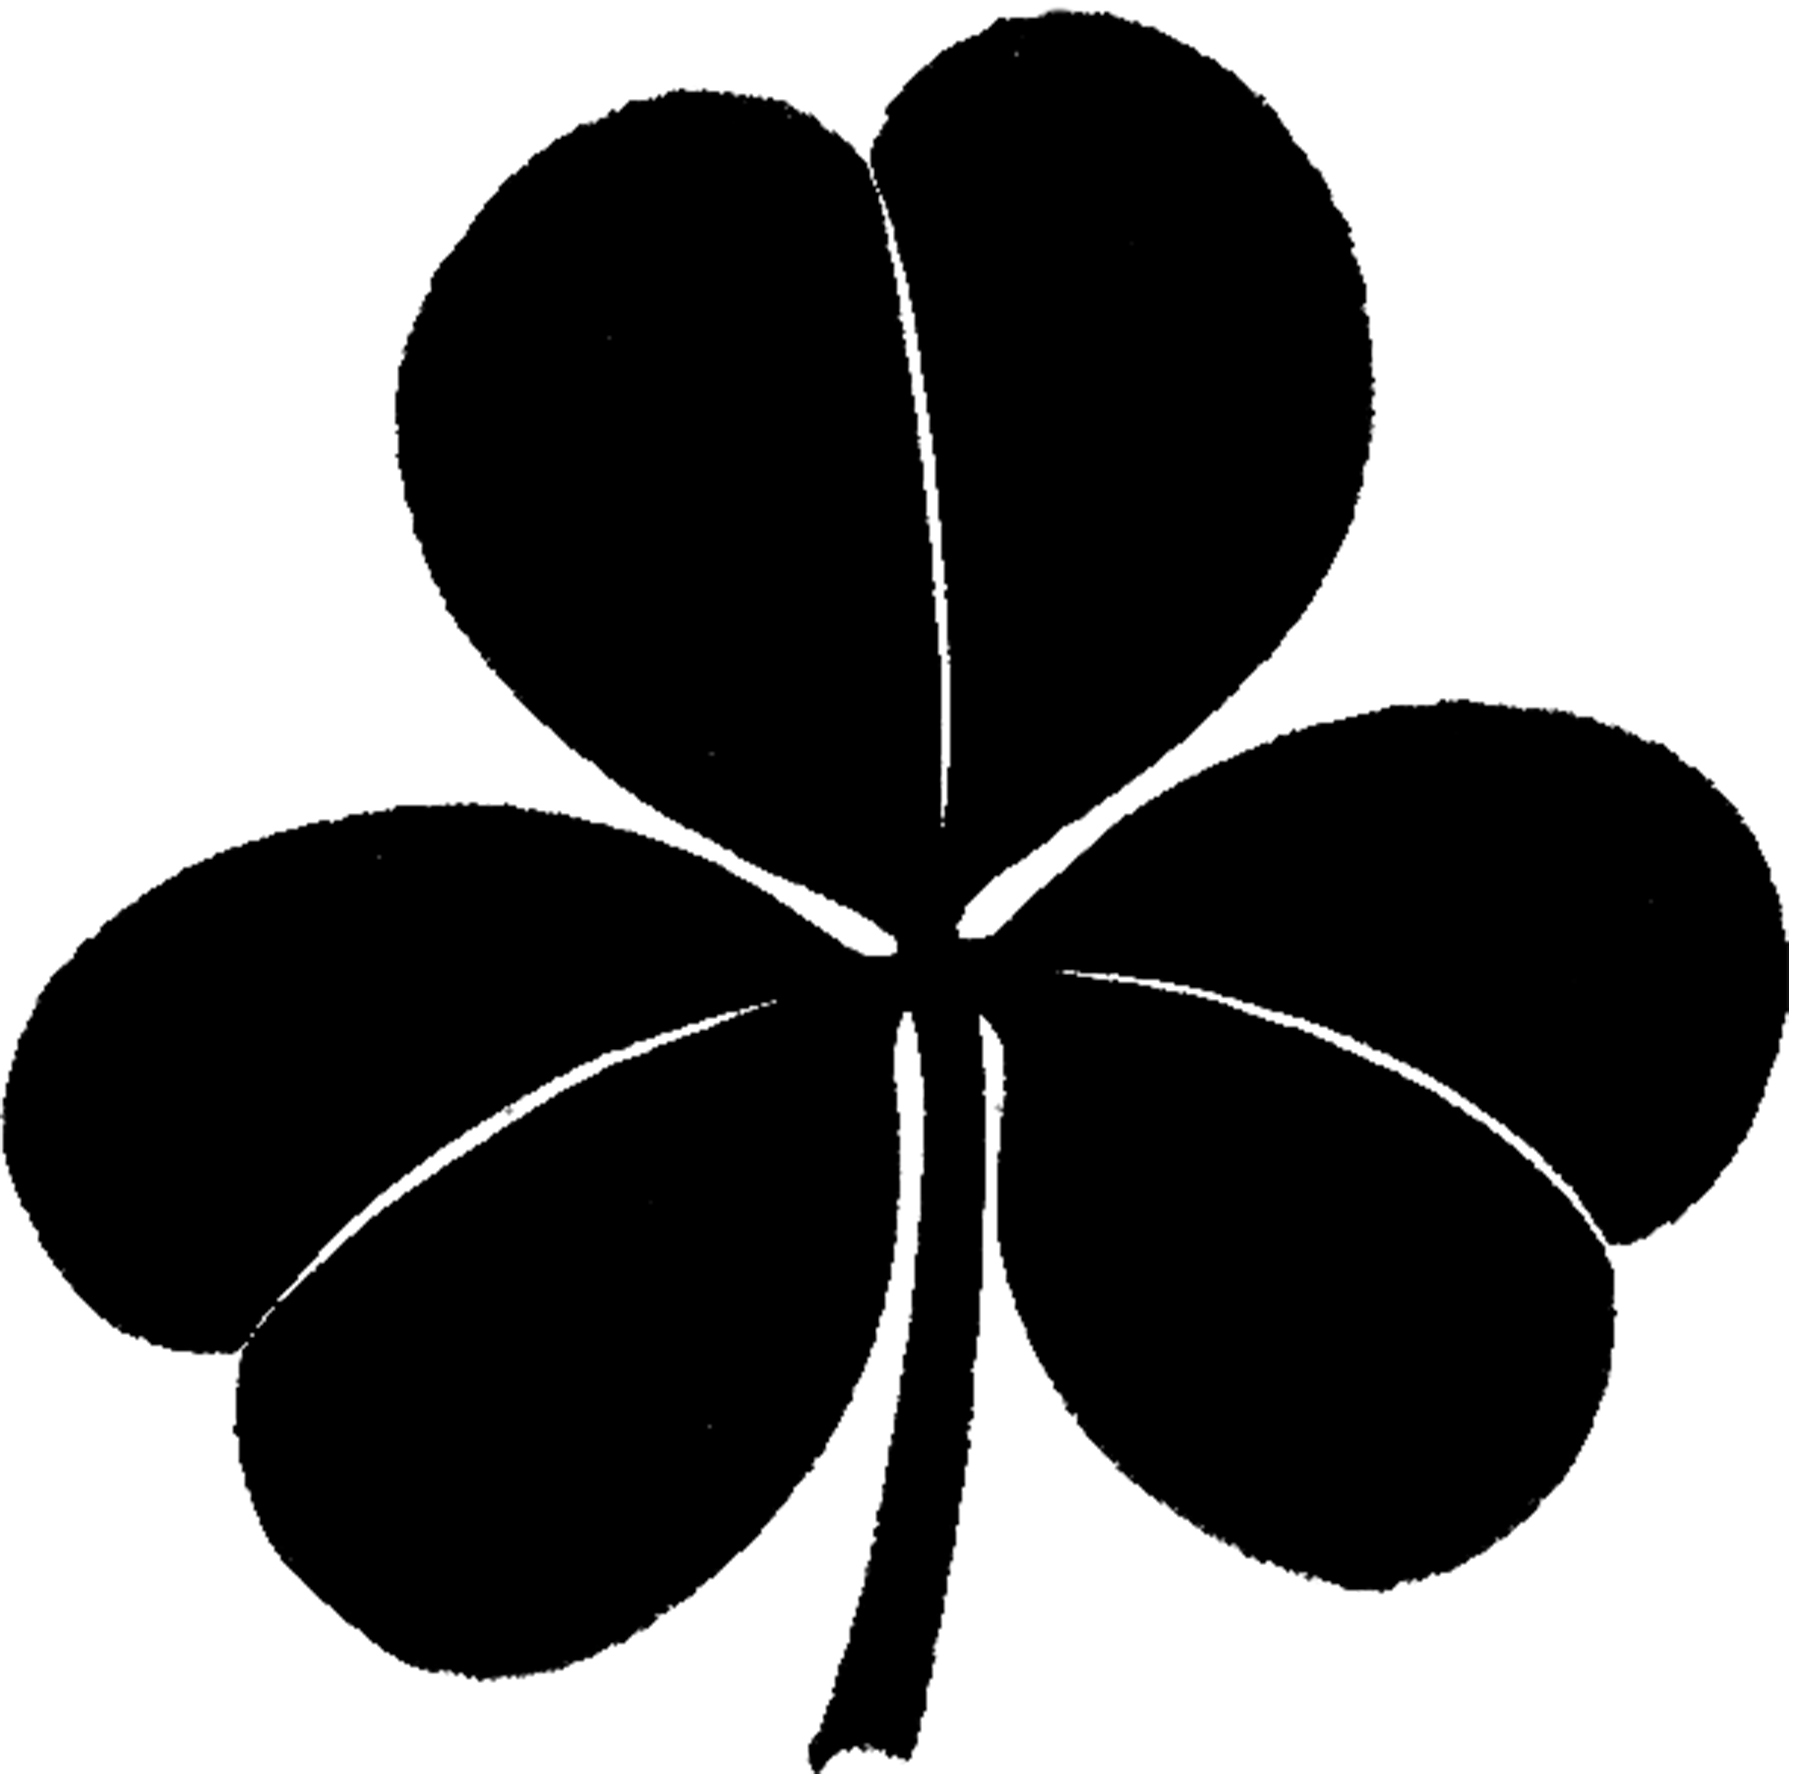 Shamrock silhouette. Clover images the